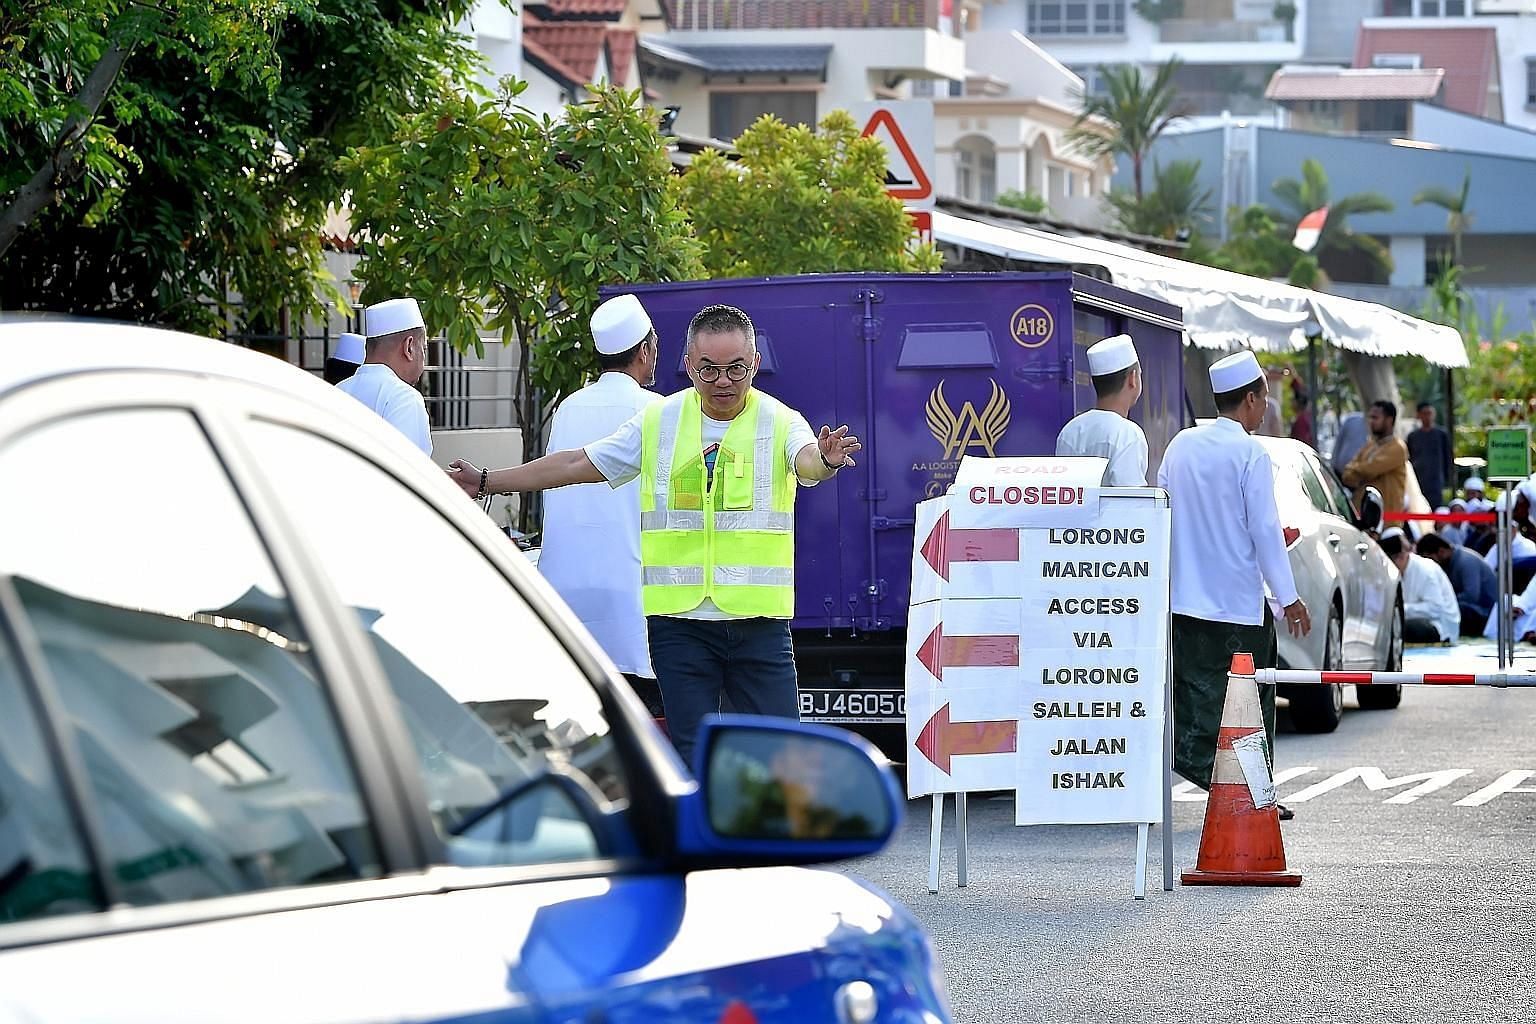 Congregants praying inside as well as outside Abdul Razak Mosque during yesterday morning's prayers. Mr Jacky Ho, 50, a volunteer from Buddhist organisation Shinnyo-en, helping to direct traffic as more than 1,000 Muslims gathered at Abdul Razak Mosq